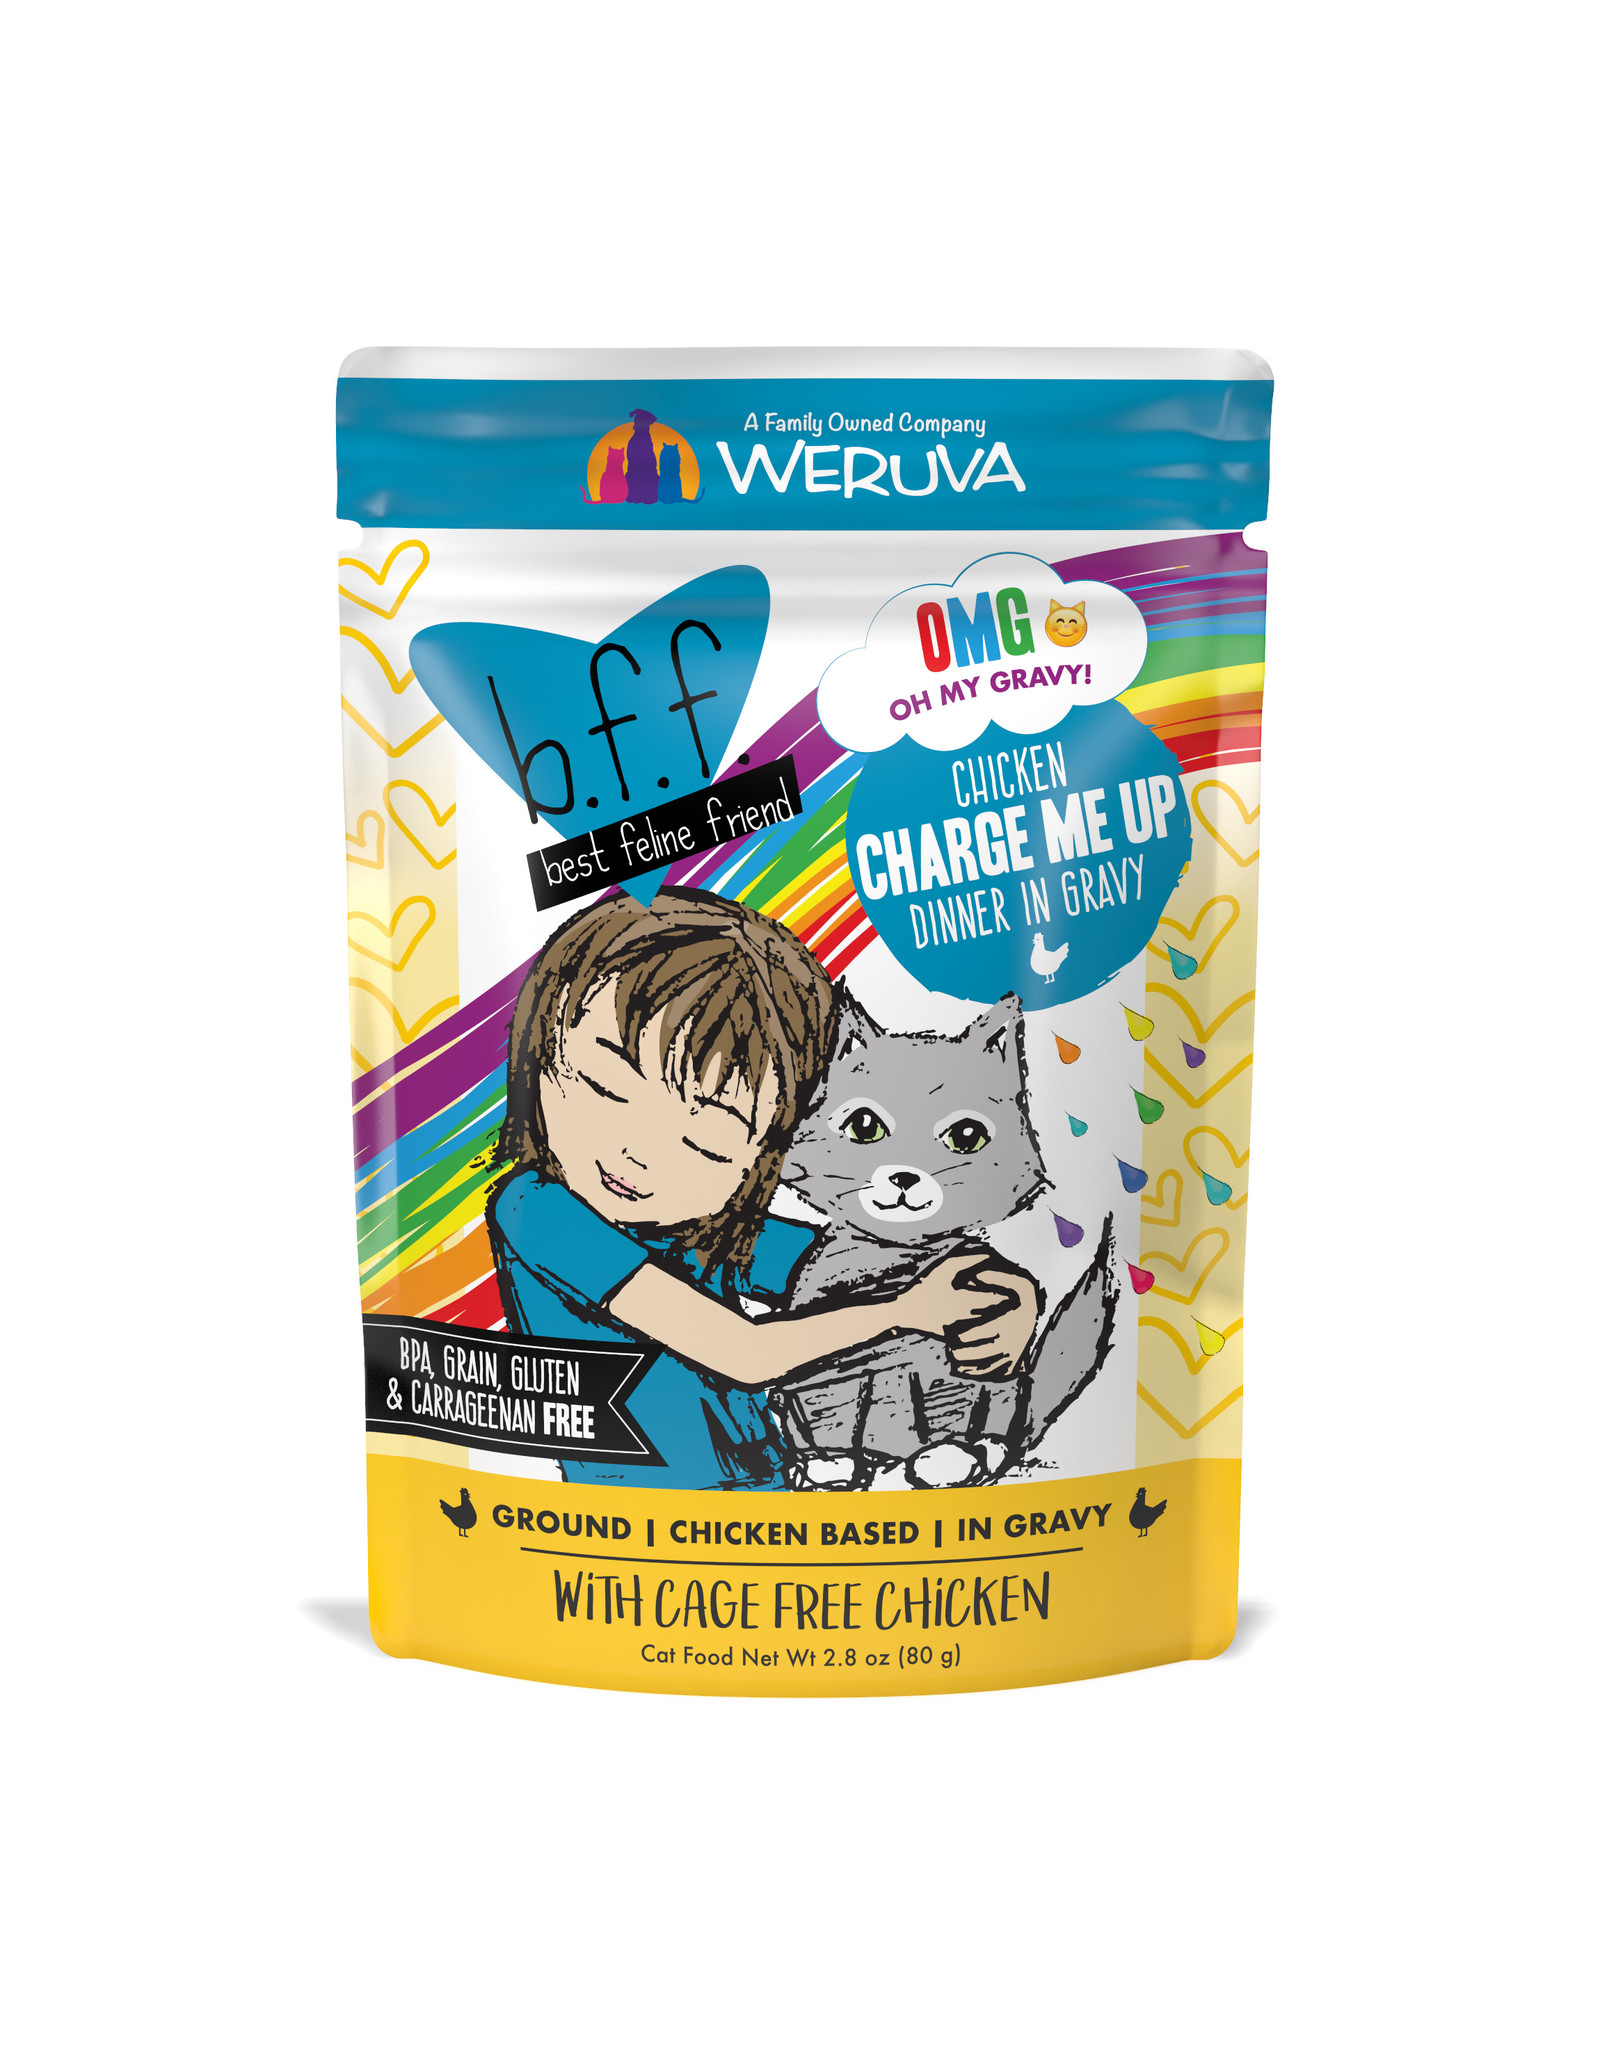 Weruva WERUVA CAT B.F.F. OMG CHARGE ME UP CHICKEN DNNER IN GRAVY 2.8OZ